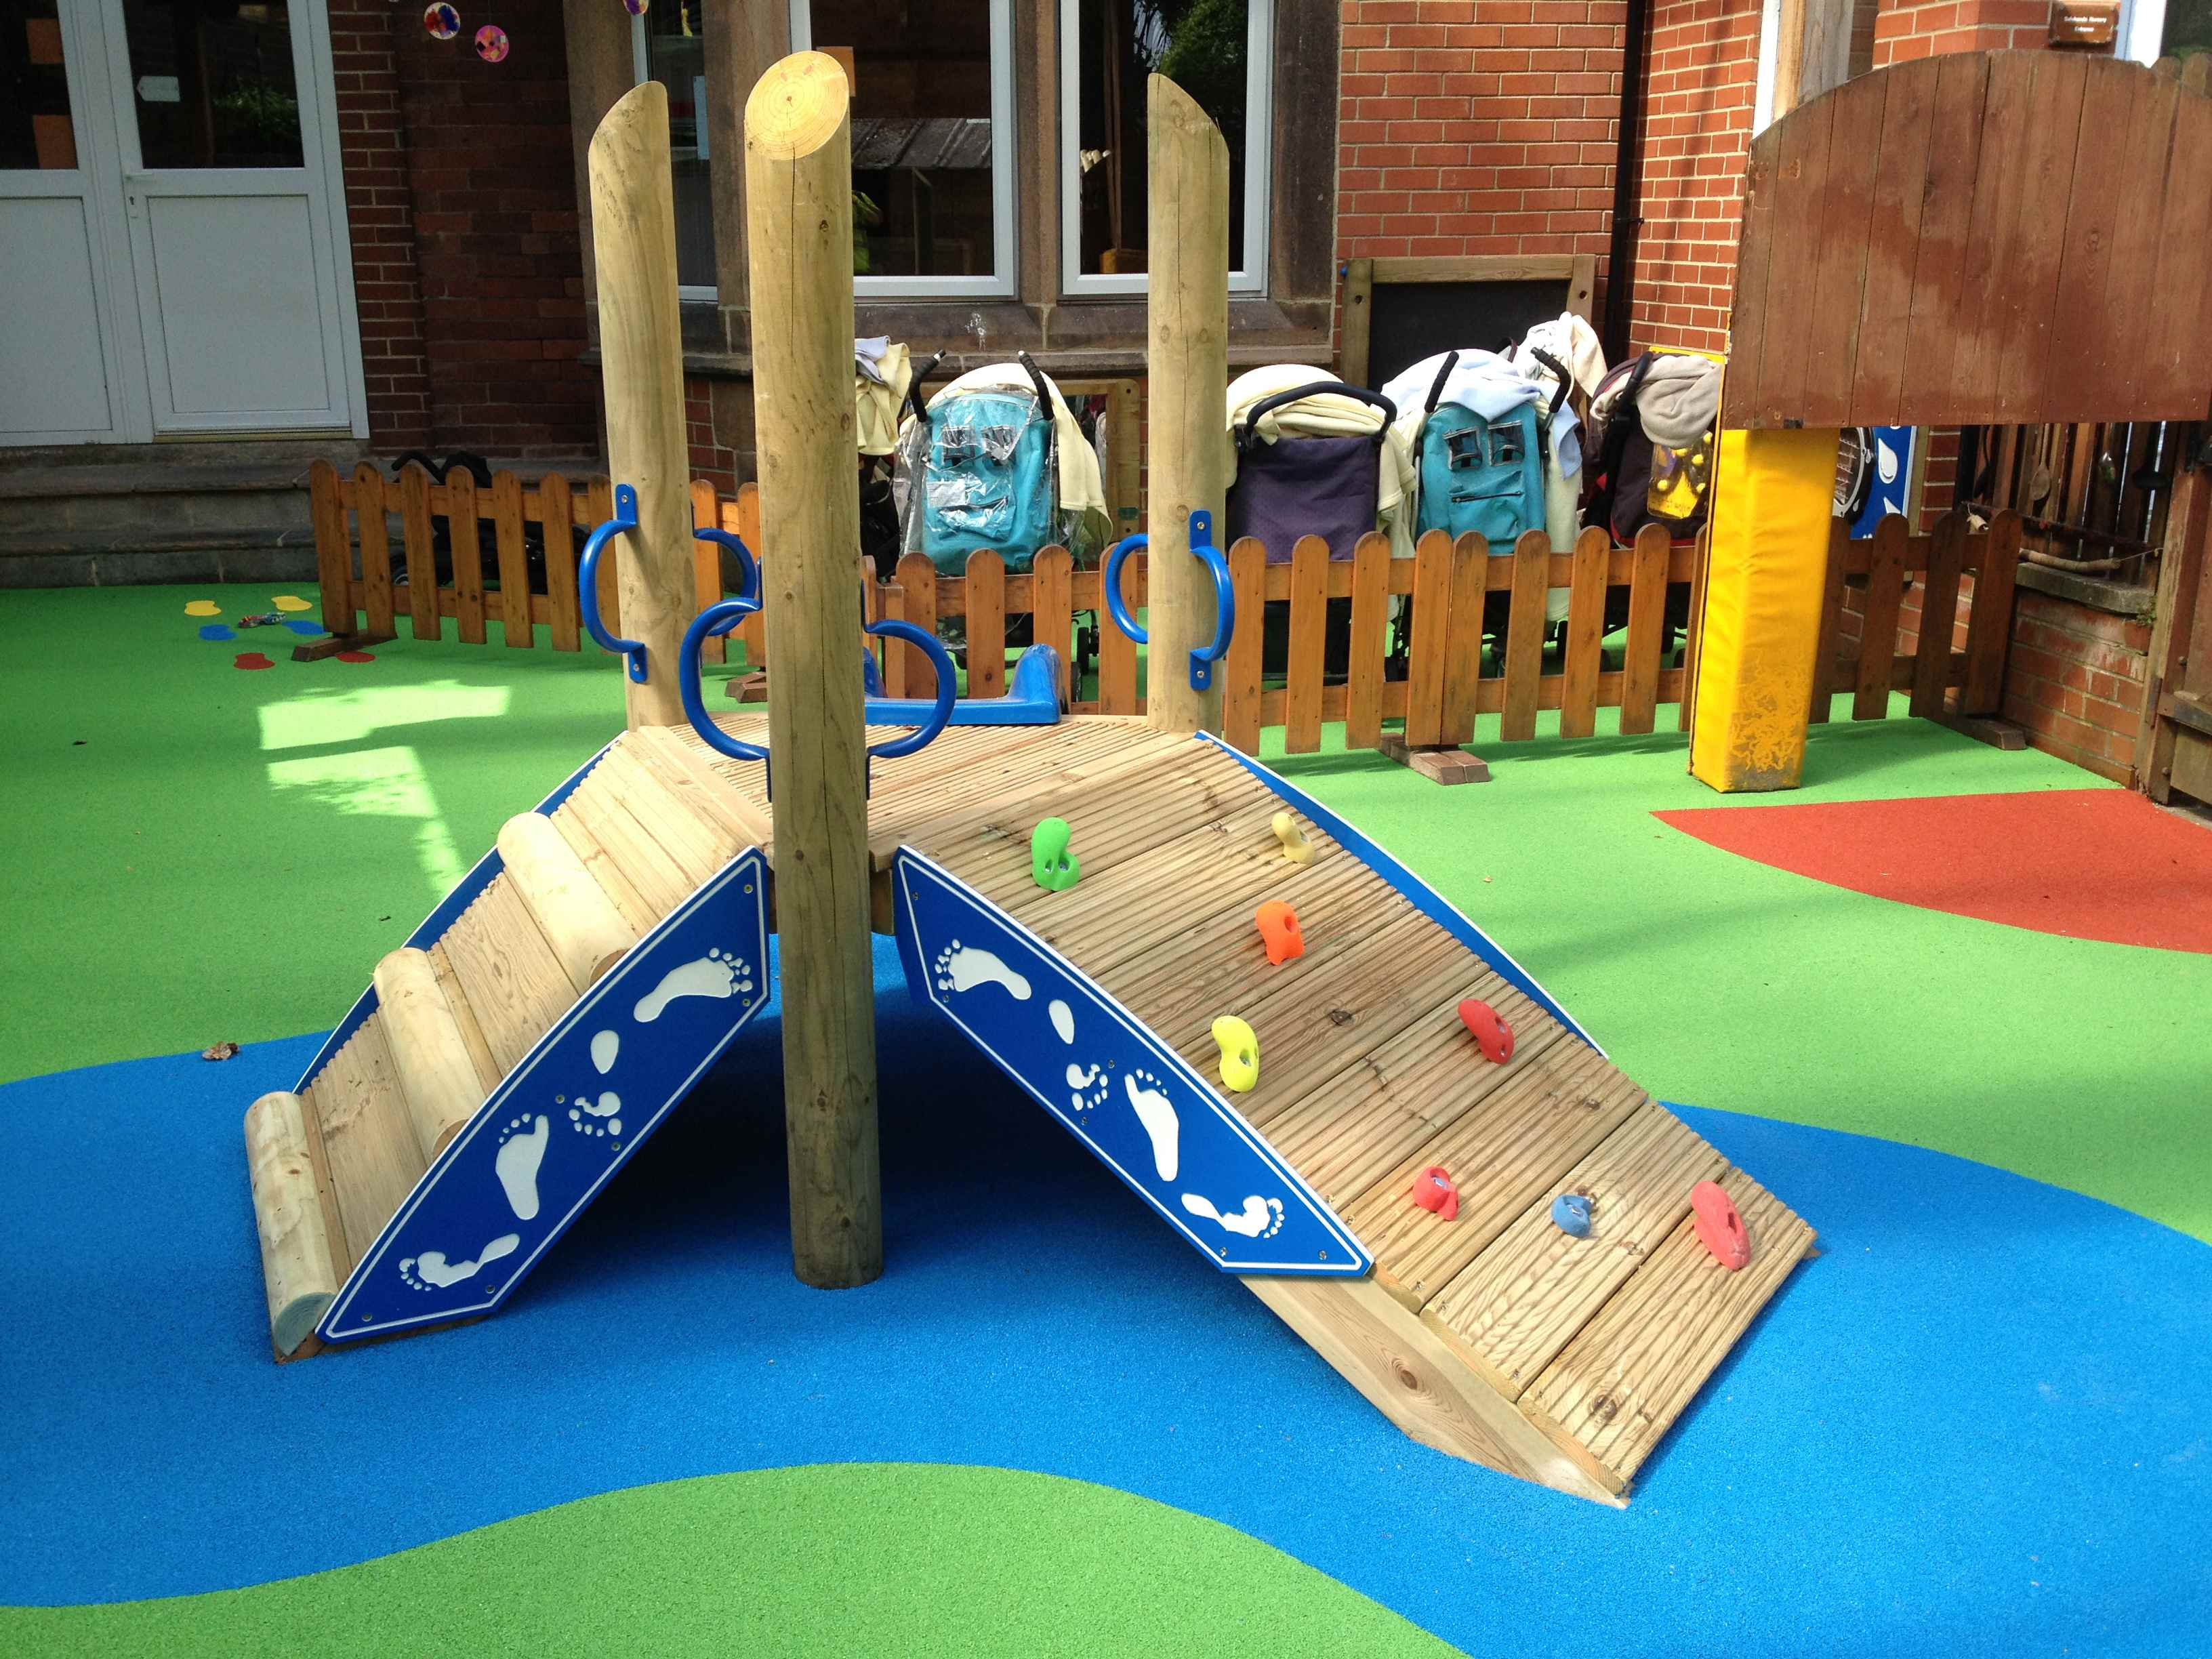 Modern and Innovatively Designed Outdoor Play Equipment